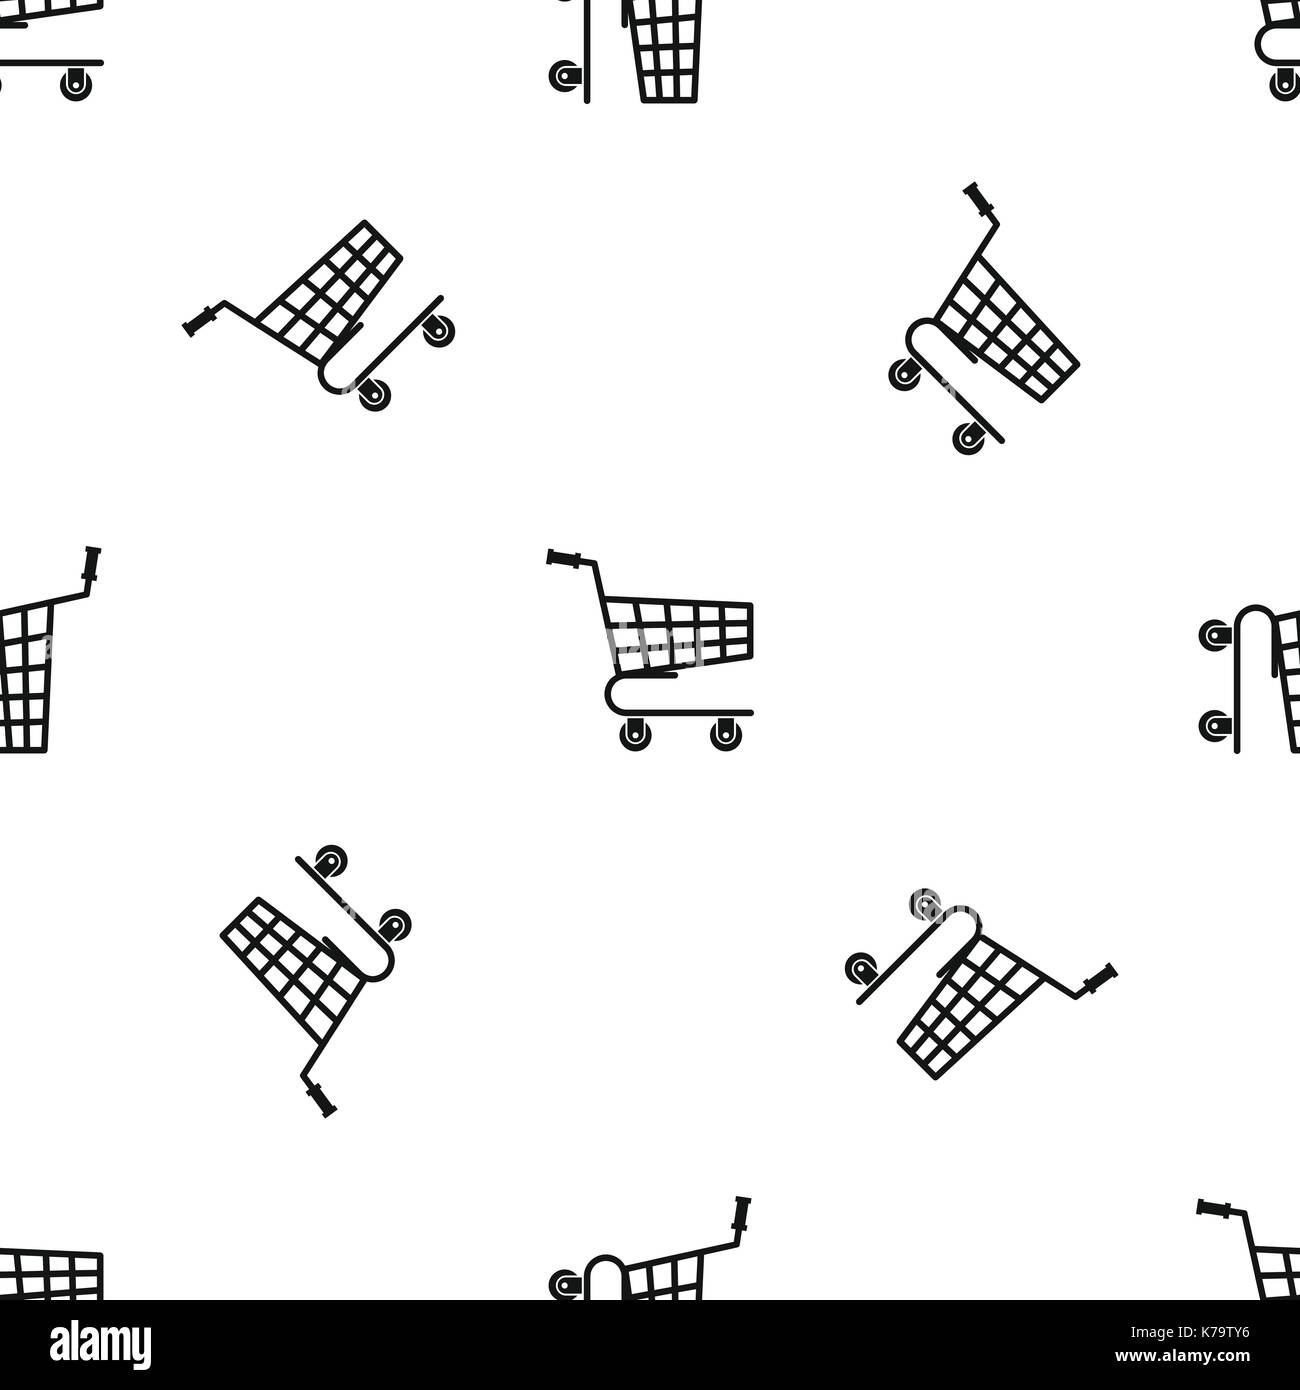 Shopping Cart Pattern Seamless Black Stock Vector Art Illustration Diagram